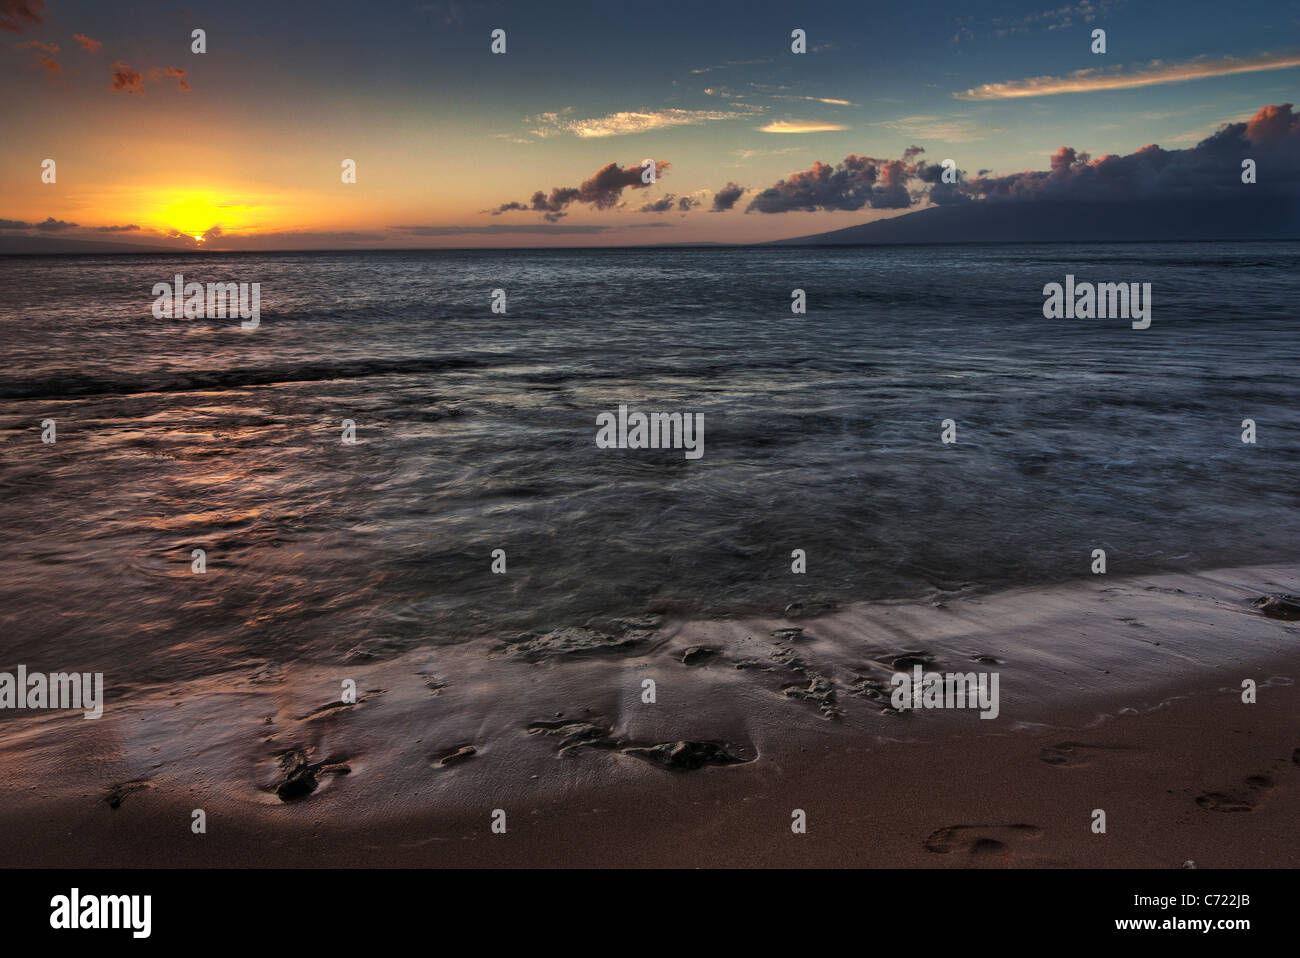 Sunset on a beach on Kaanapali Maui Hawaii showing the colorful sky colors with the island of Molokai in the distance Stock Photo